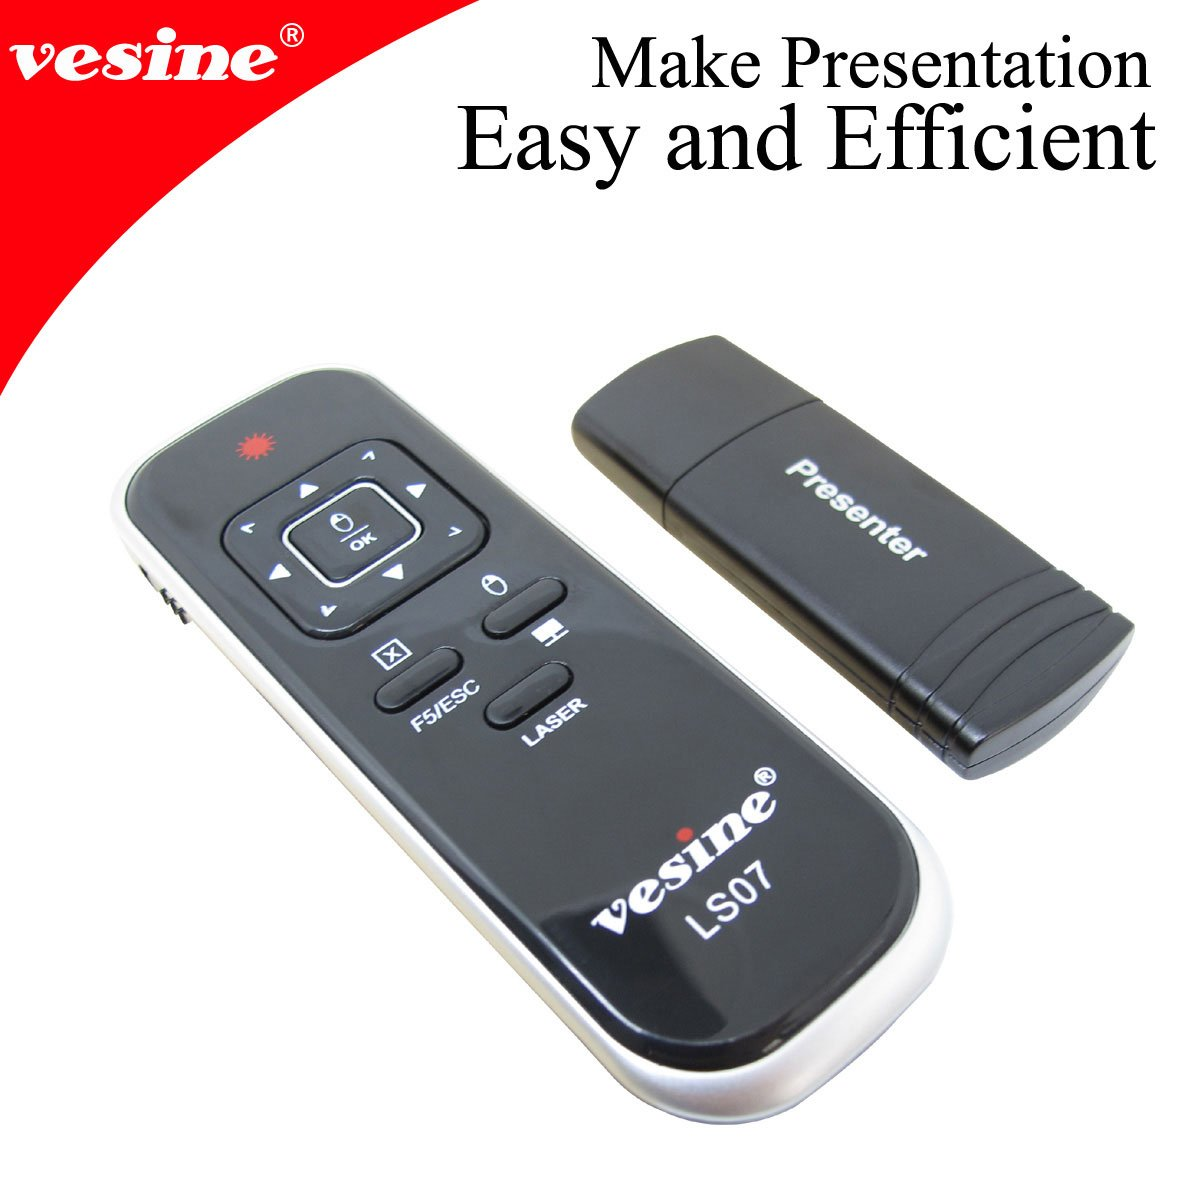 Free Shipping!*Guranree 100% wireless mouse presenter 1pc LS07 with hyperlink and full/black screen for teaching and meeting(China (Mainland))